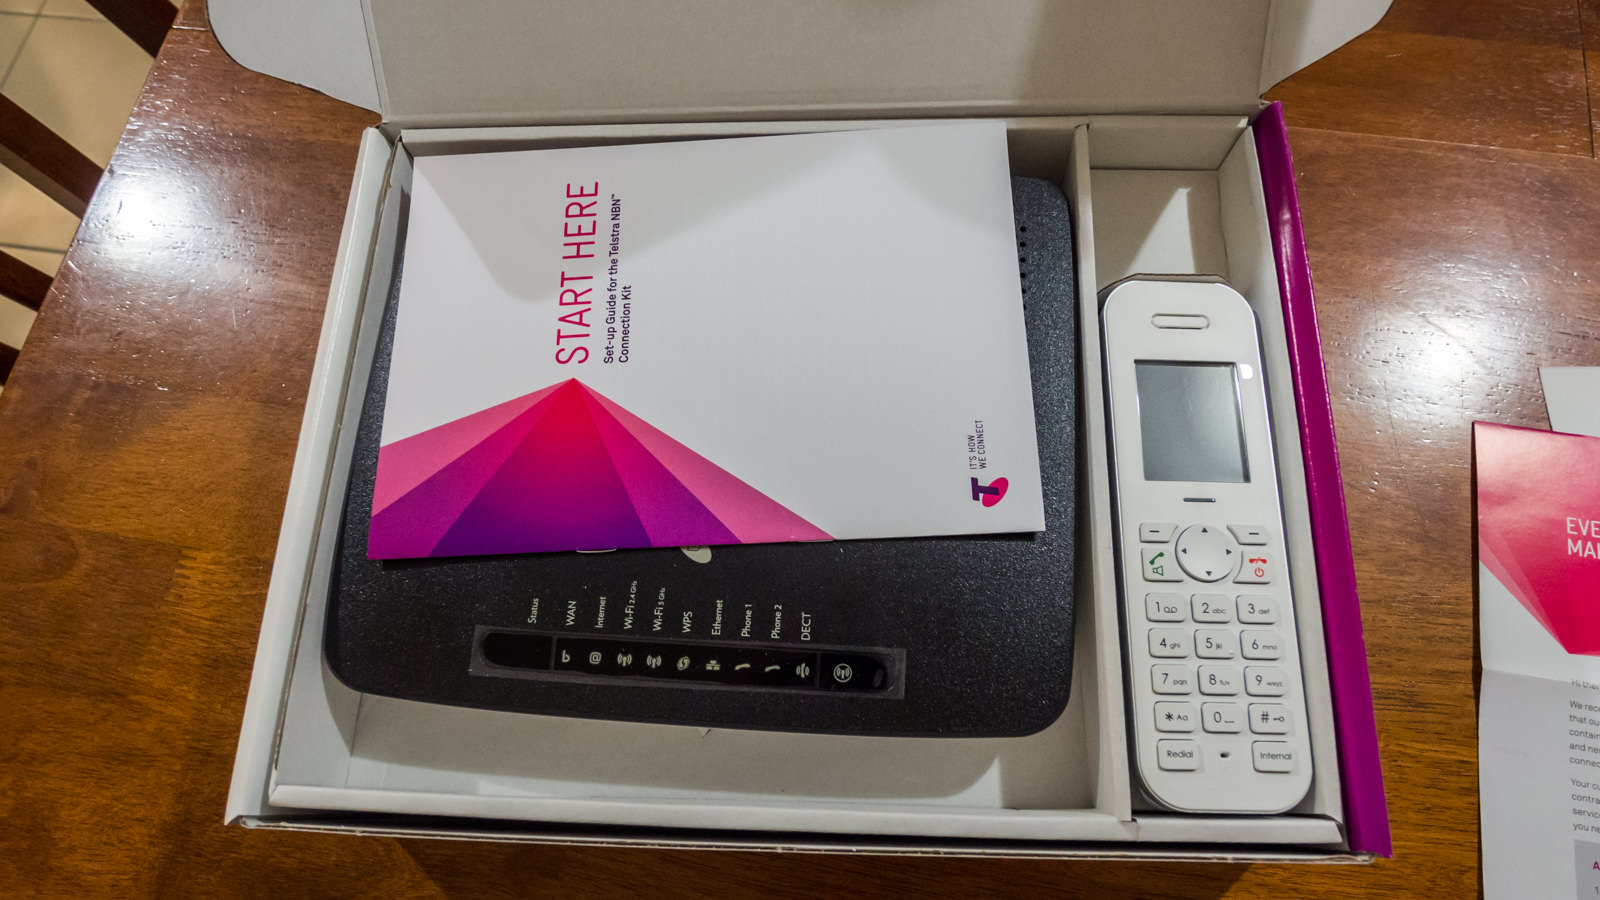 Telstra NBN Connection Kit, new modem and phone